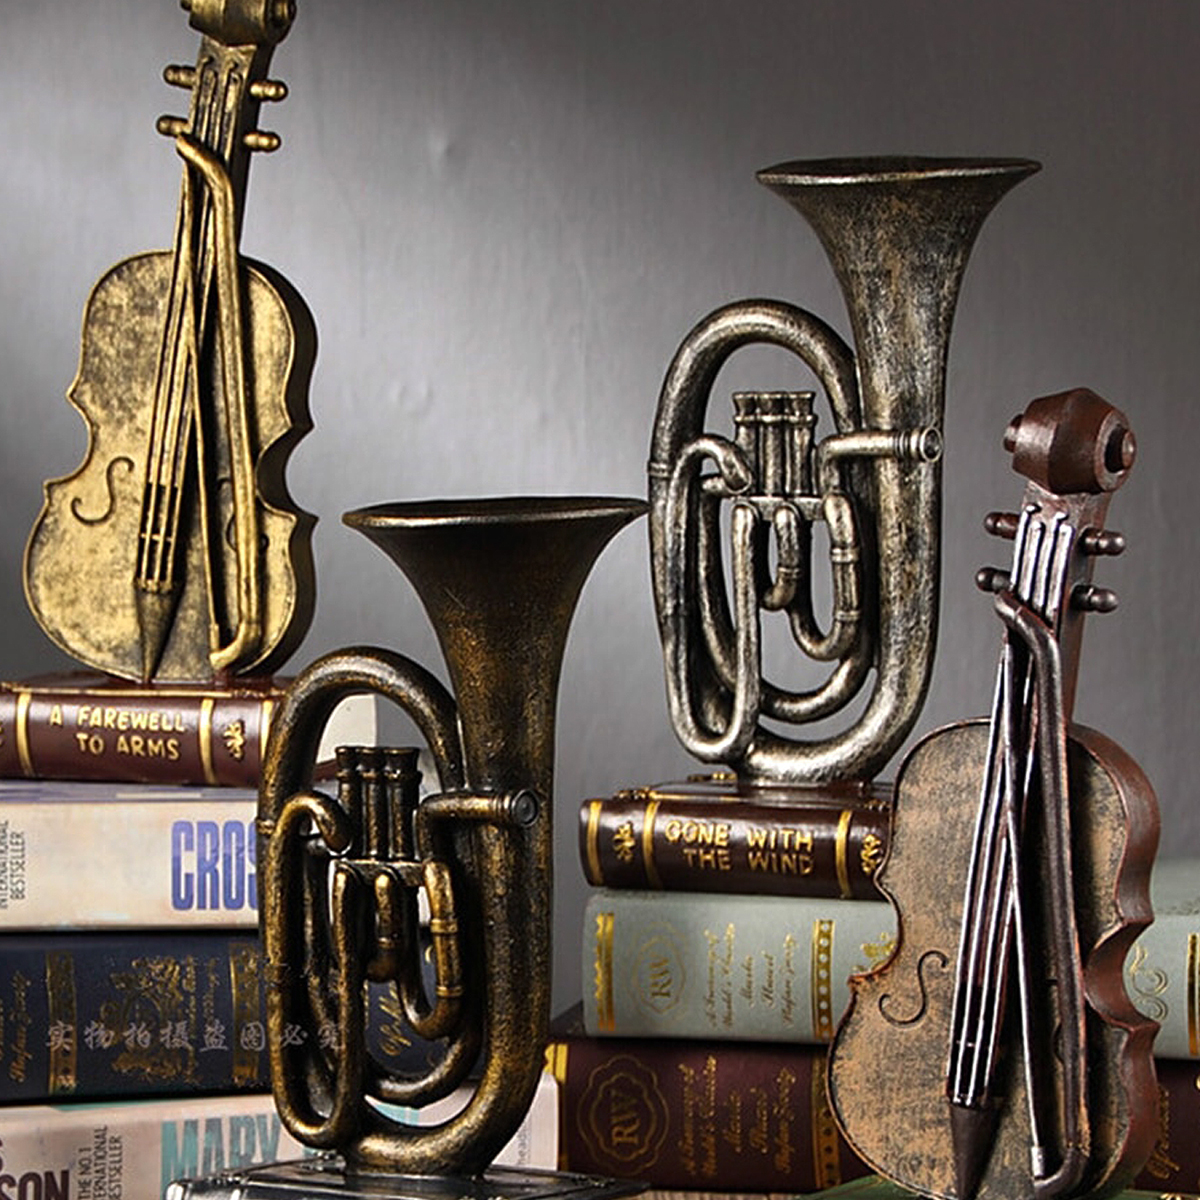 Vintage Musical Instruments Shabby Chic Cafe Bar Home Decoration Accessories Resin Crafts